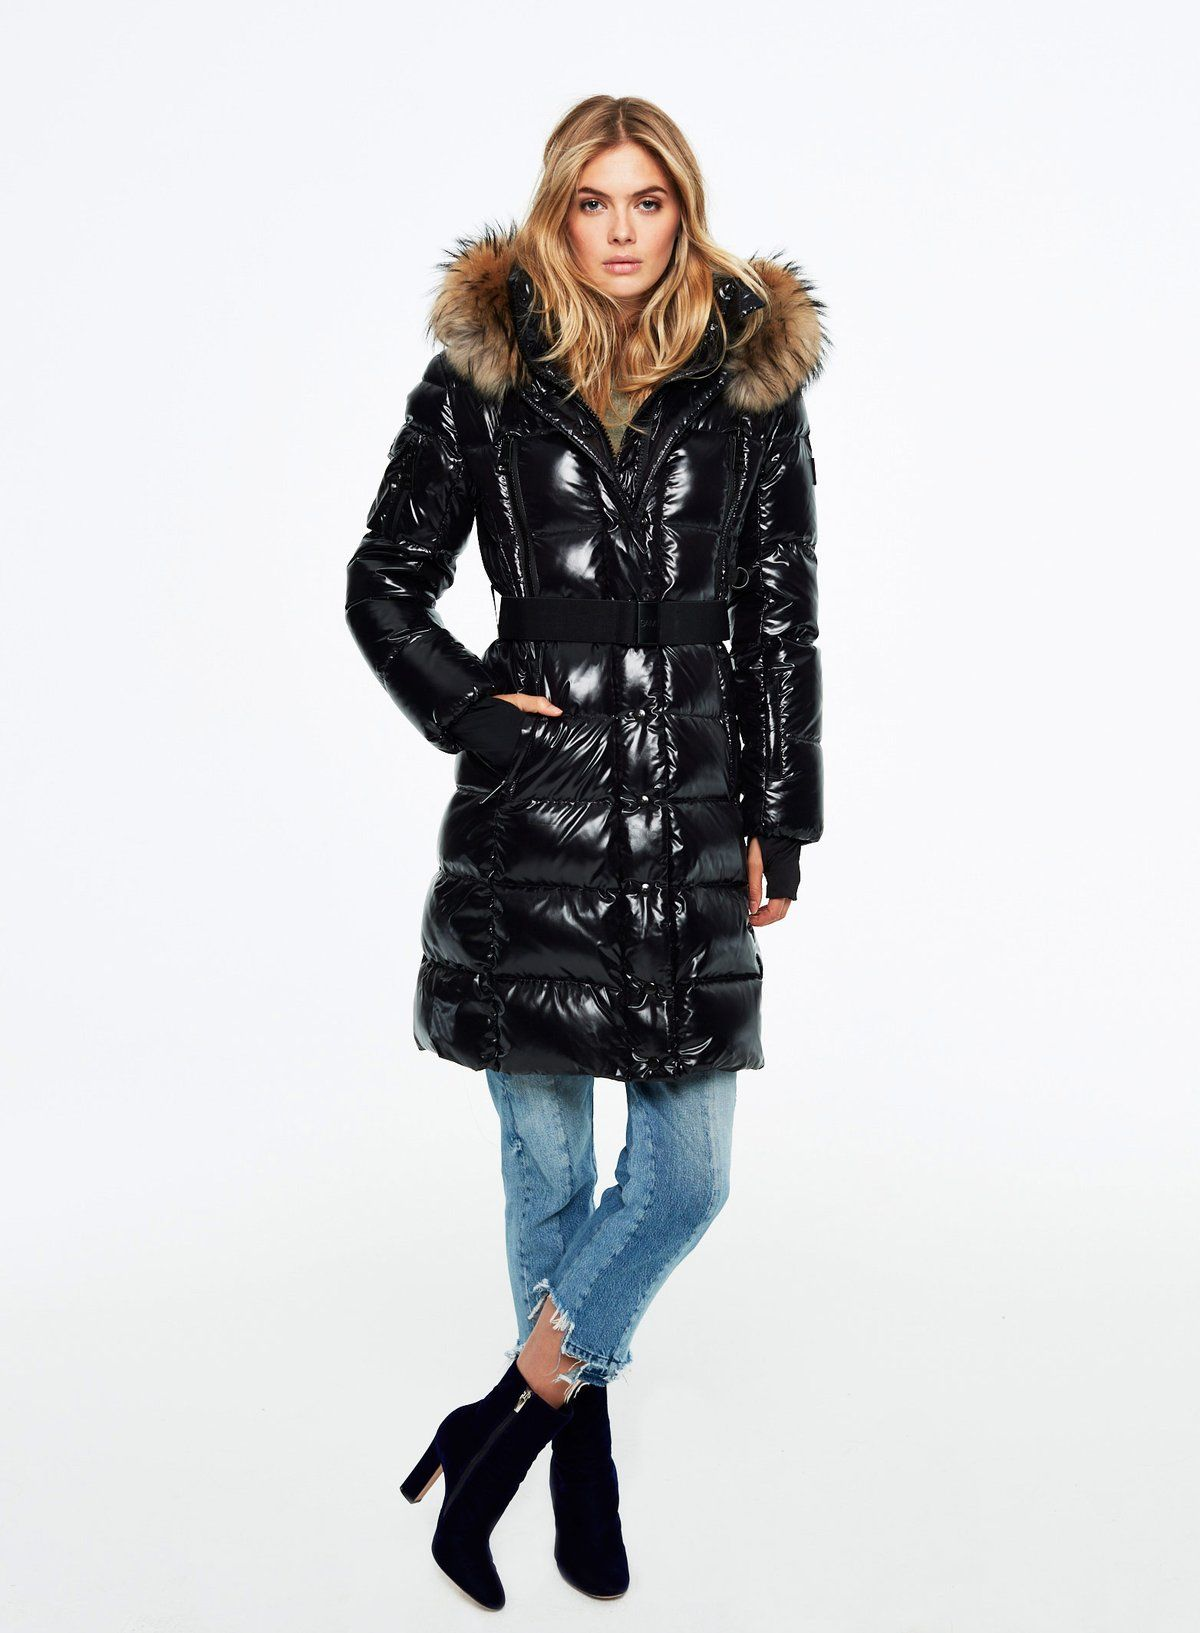 b5fdc832c Infinity | Quick Saves | Winter outfits women, Coat, Fur puffer coat